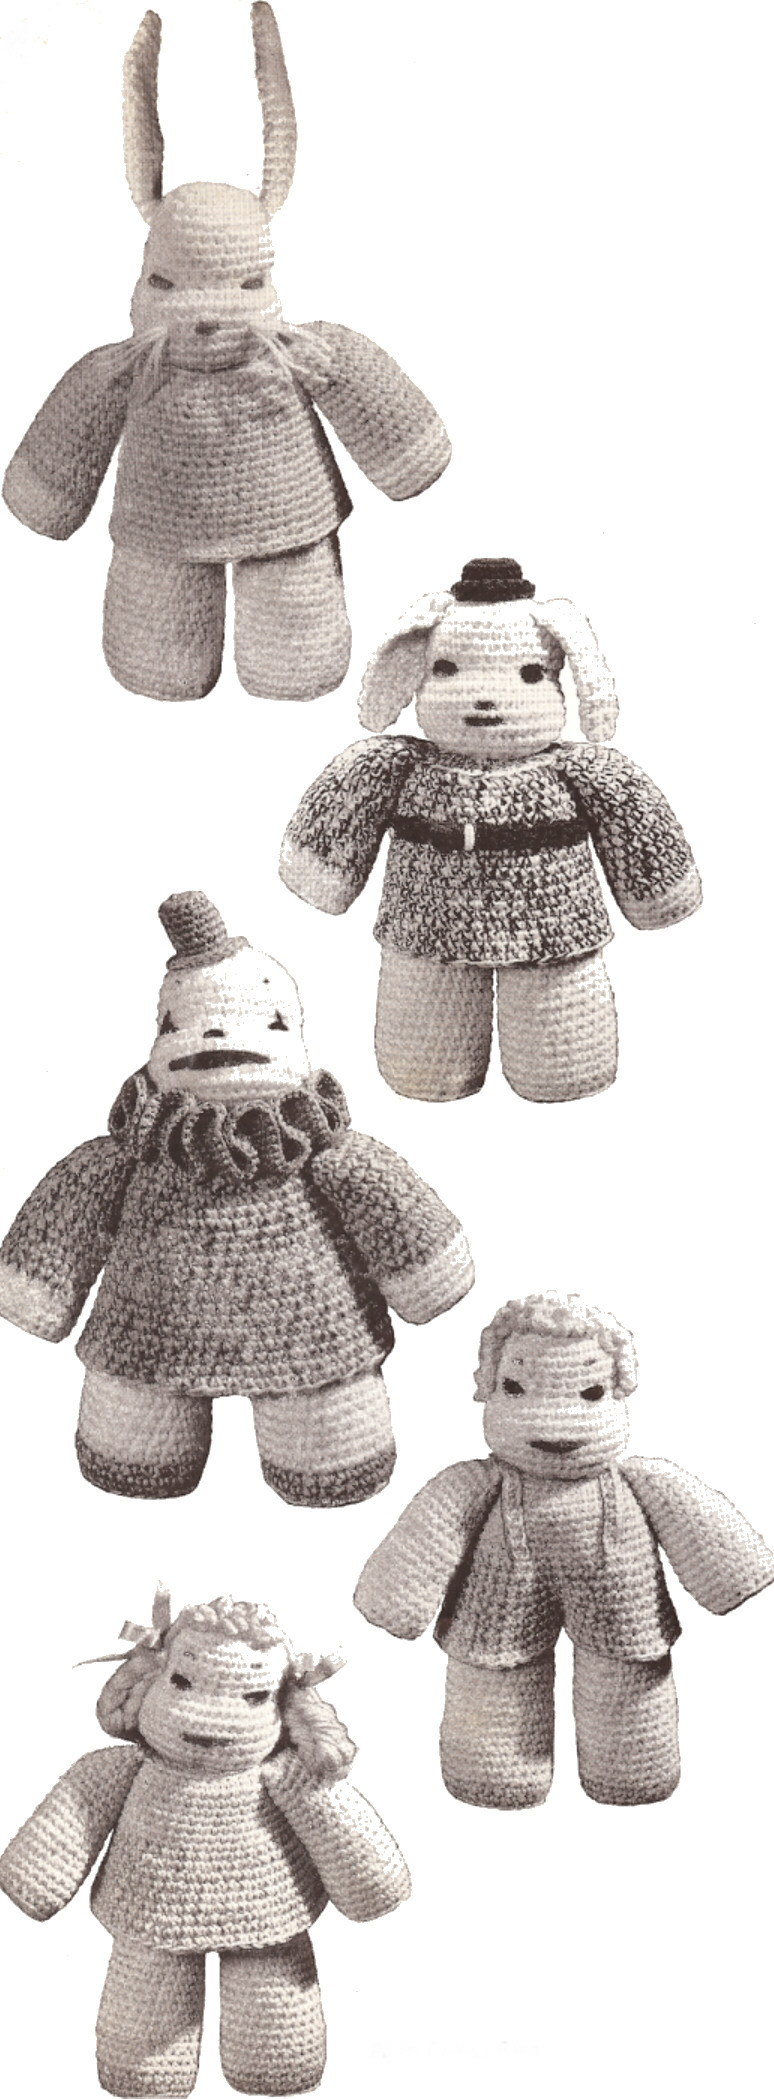 Free Crochet Patterns for Toys - LoveToKnow: Advice women can trust